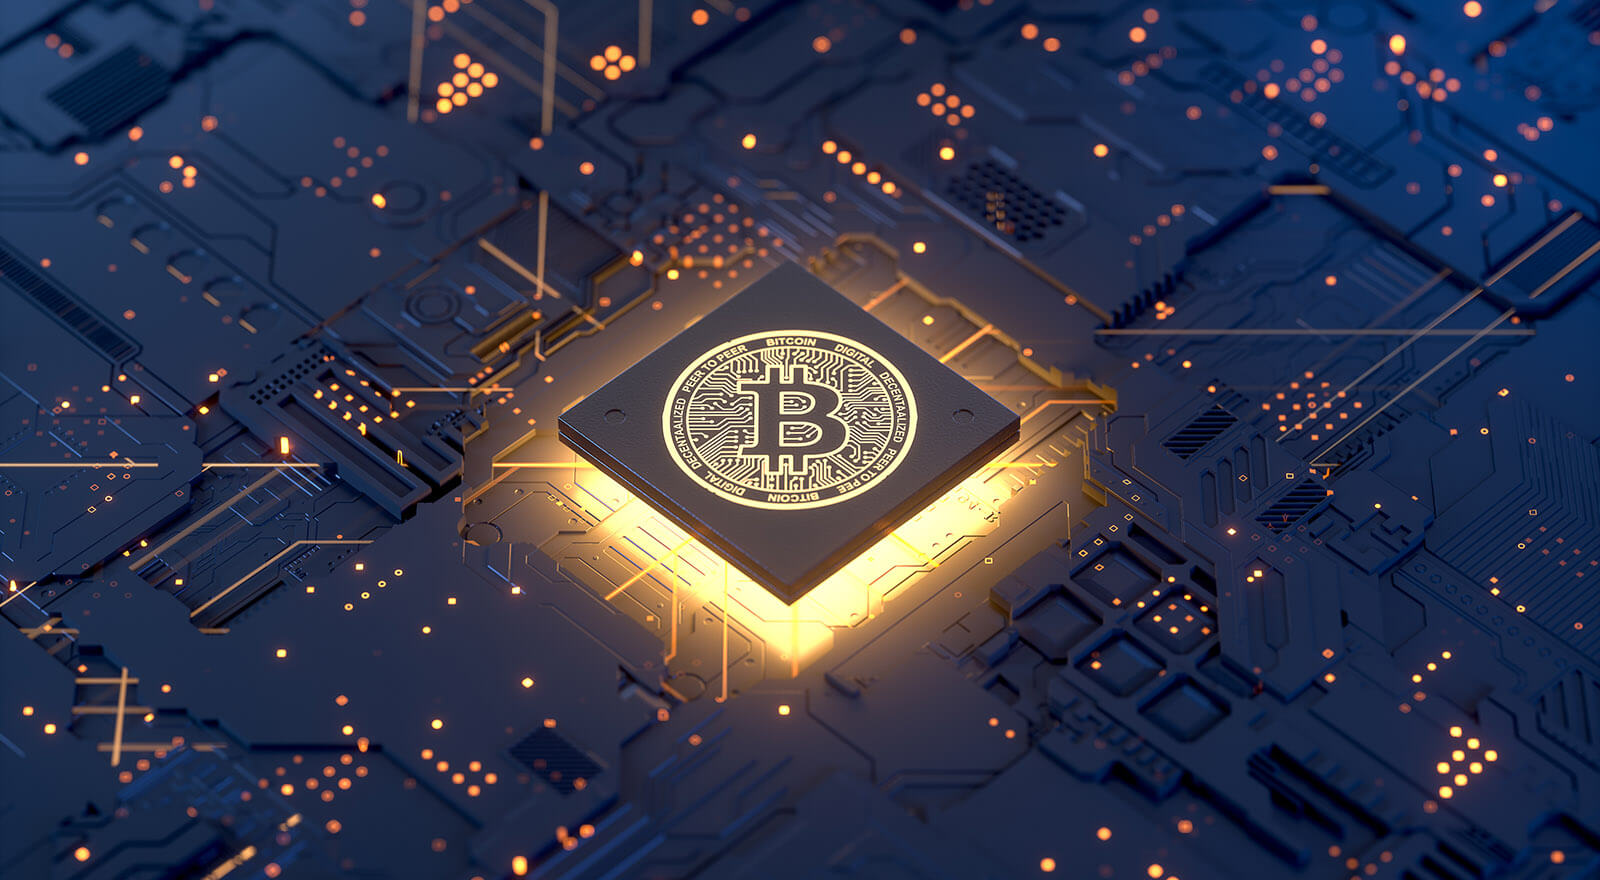 Bitcoin on motherboard, 3d rendering,conceptual image.